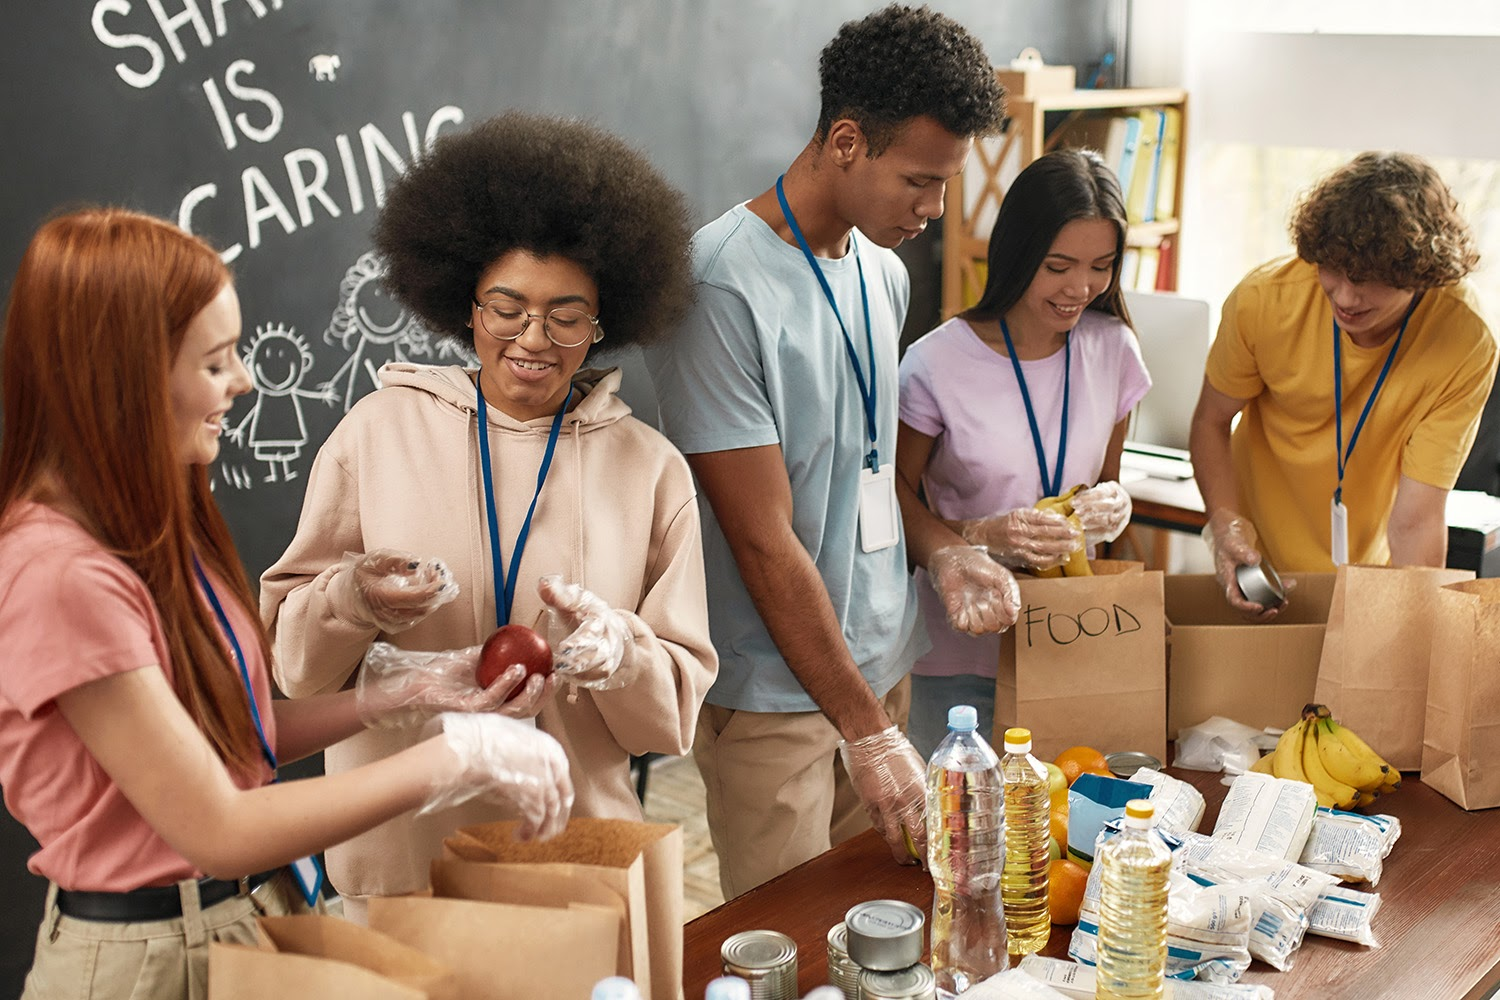 GoFundMe charity: Group of young people sorting food in paper bags